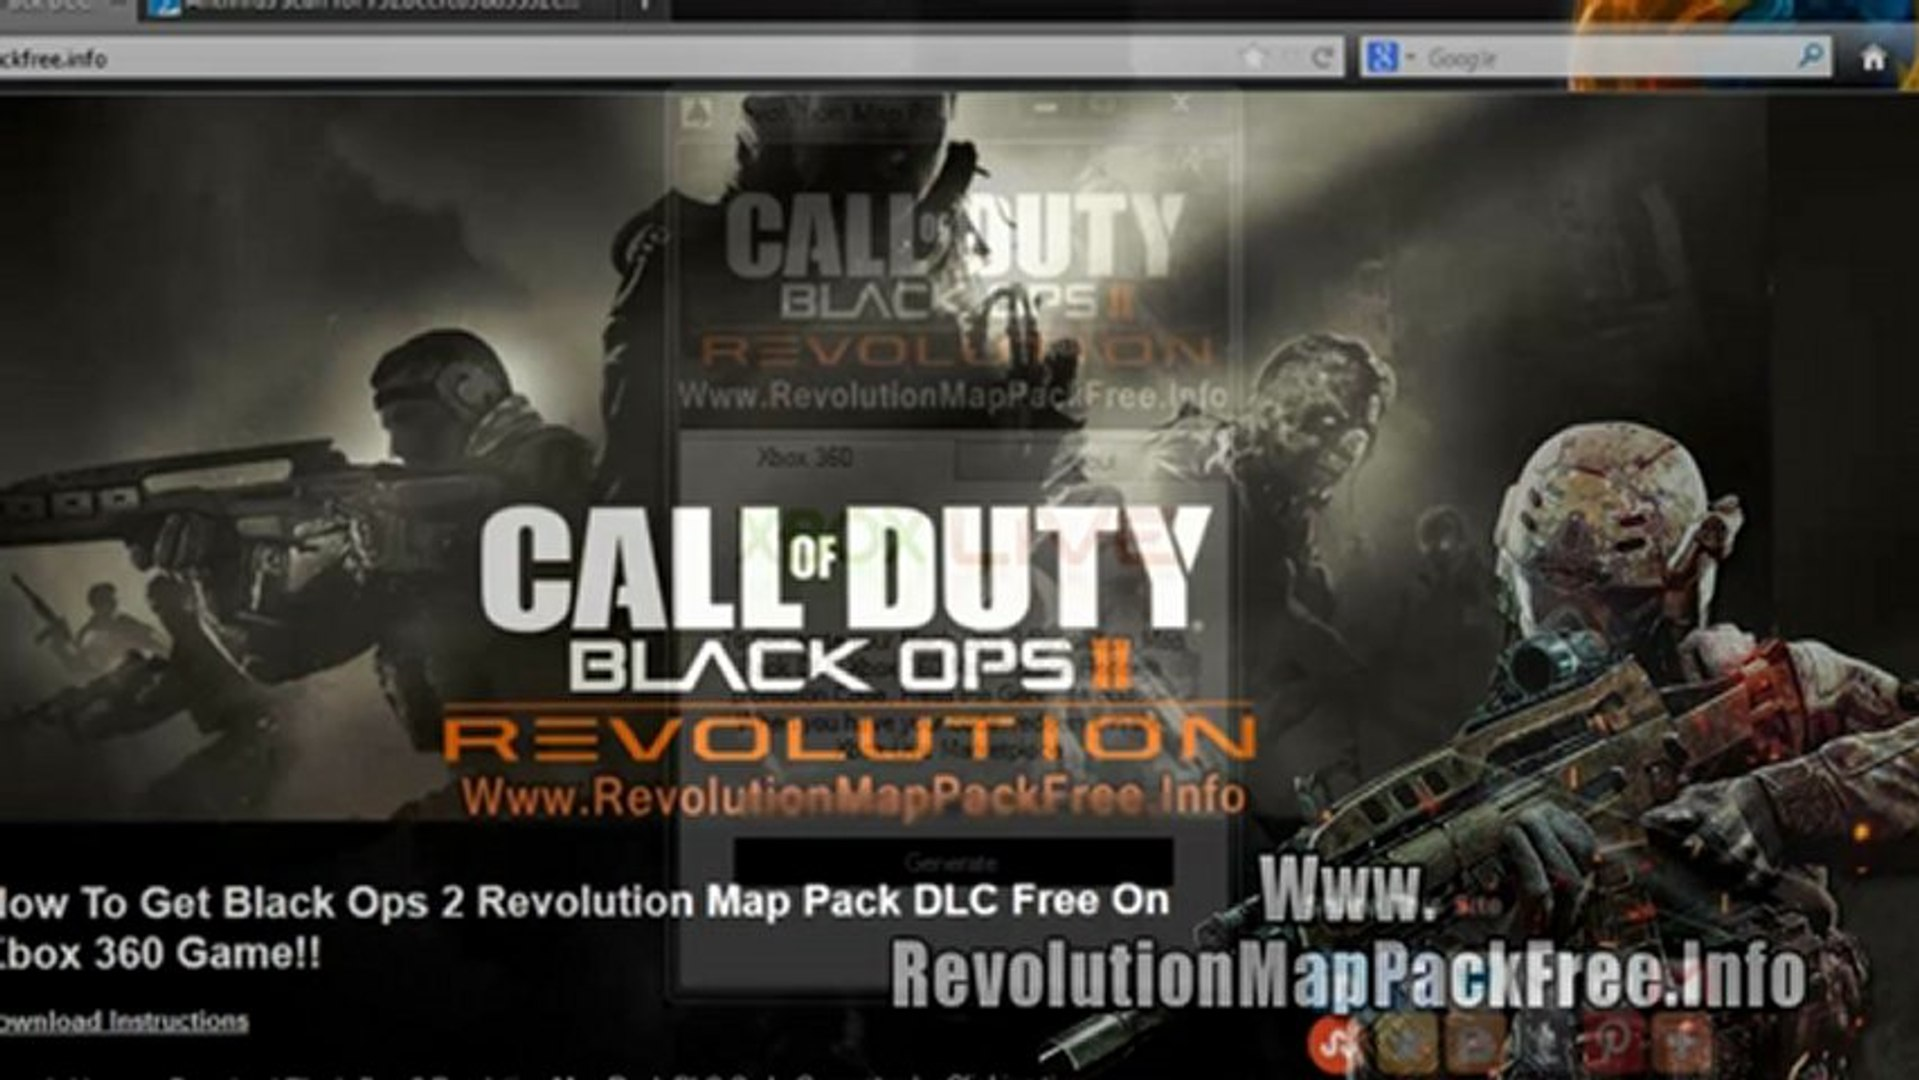 Black Ops 2 Revolution Map Pack DLC Free Xbox 360 on black ops first strike maps, black ops multiplayer mods pc, modern warfare dlc maps, black ops 1 maps, black ops 3 multiplayer, black ops add-on maps, black ops 3 dlc maps, black ops stadium, black ops origins map layout, black ops 1 cheats for xbox 360, cod black ops rezurrection maps, gta 5 dlc maps, cod dlc maps, black ops vengeance, black ops dlc map names, black ops2 maps, black ops dlc maps list, call of duty black ops dlc maps, black ops ii dlc, black ops 3 release,